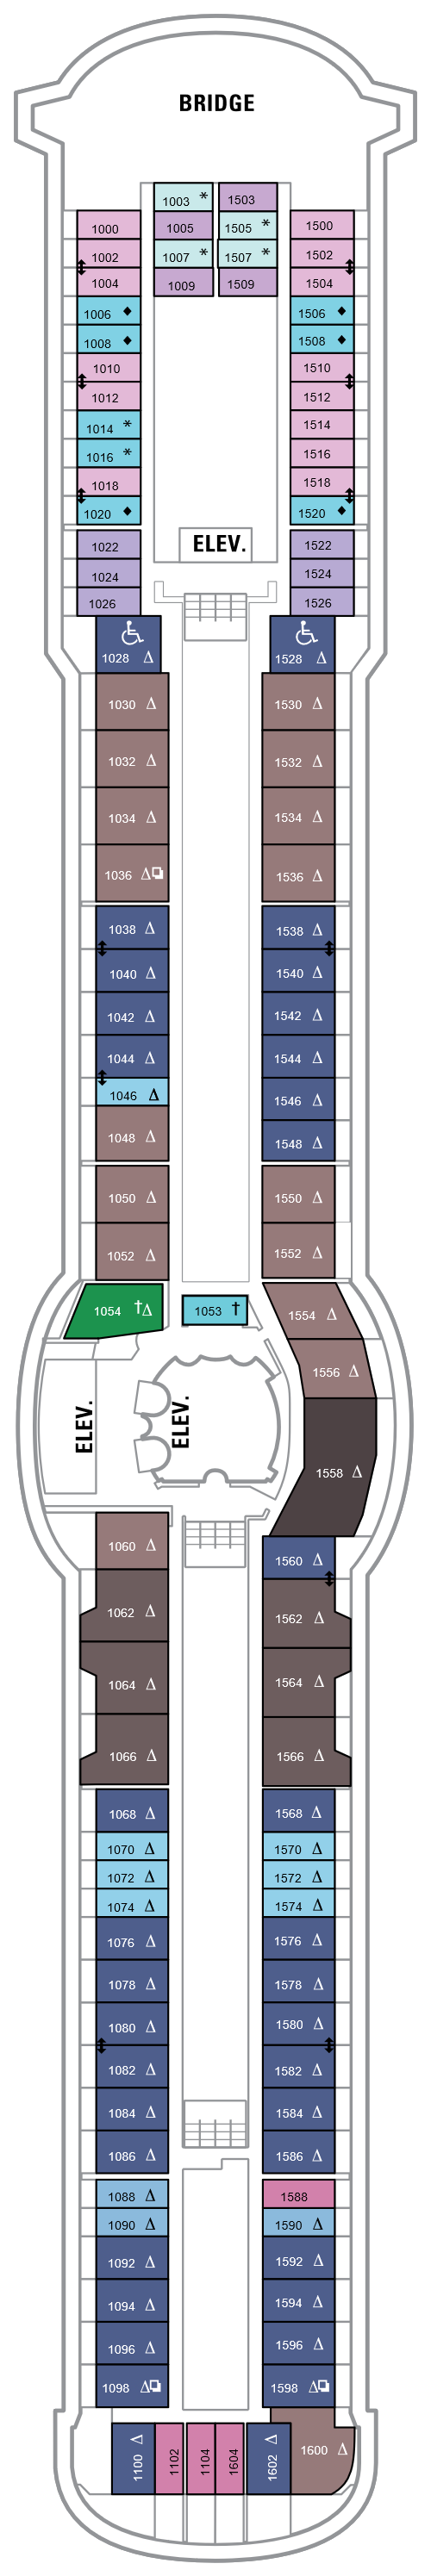 Brilliance Of The Seas Deck 10 layout